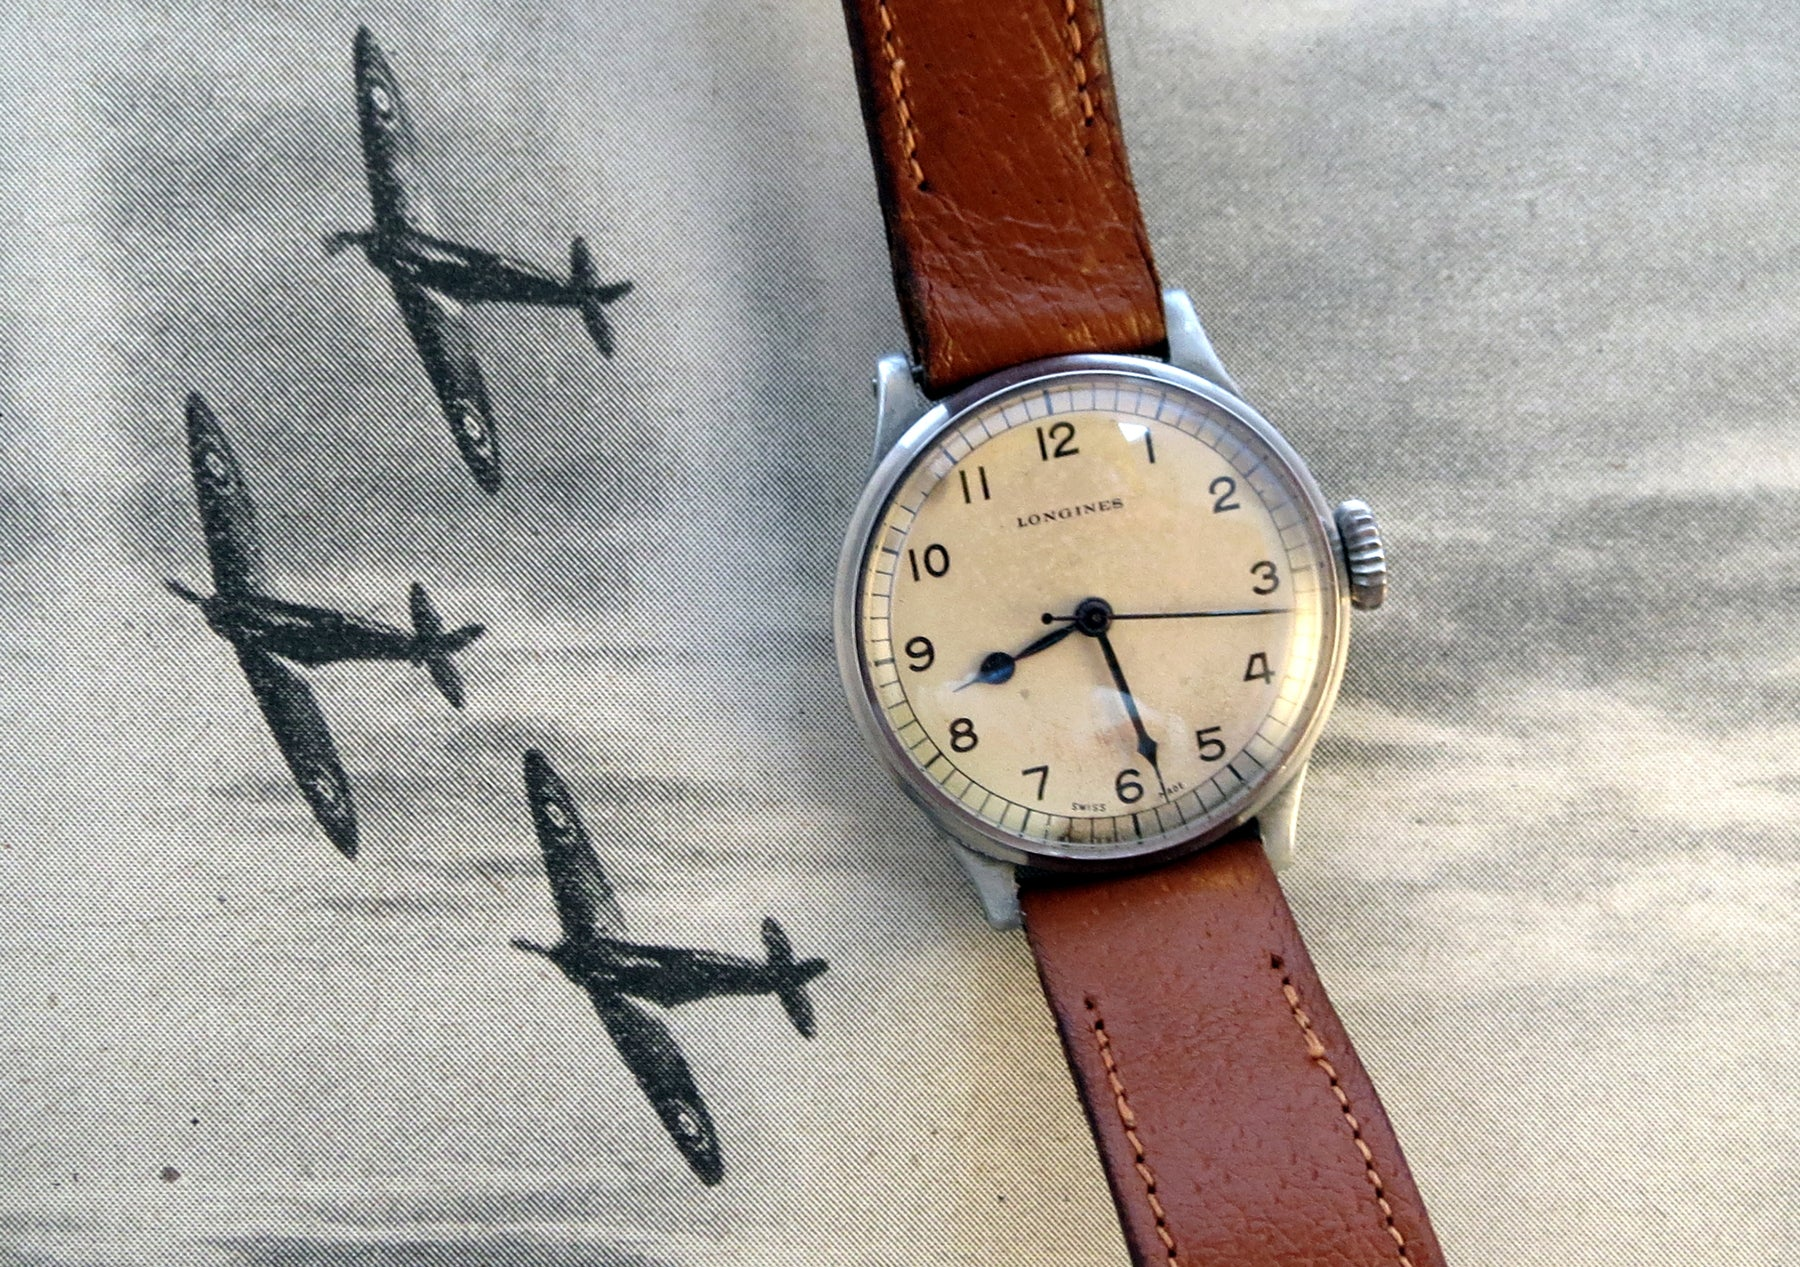 Longines 159/6B issued to an RAF flight crew in 1943. Whilst the movement is high quality, the case is made out of an aluminium alloy, due to material shortages at this stage in the war. Note the oversized crown to allow pilots flying at altitude, in freezing cold unpressurised cockpits, to operate the crown whilst wearing thick flight gloves.